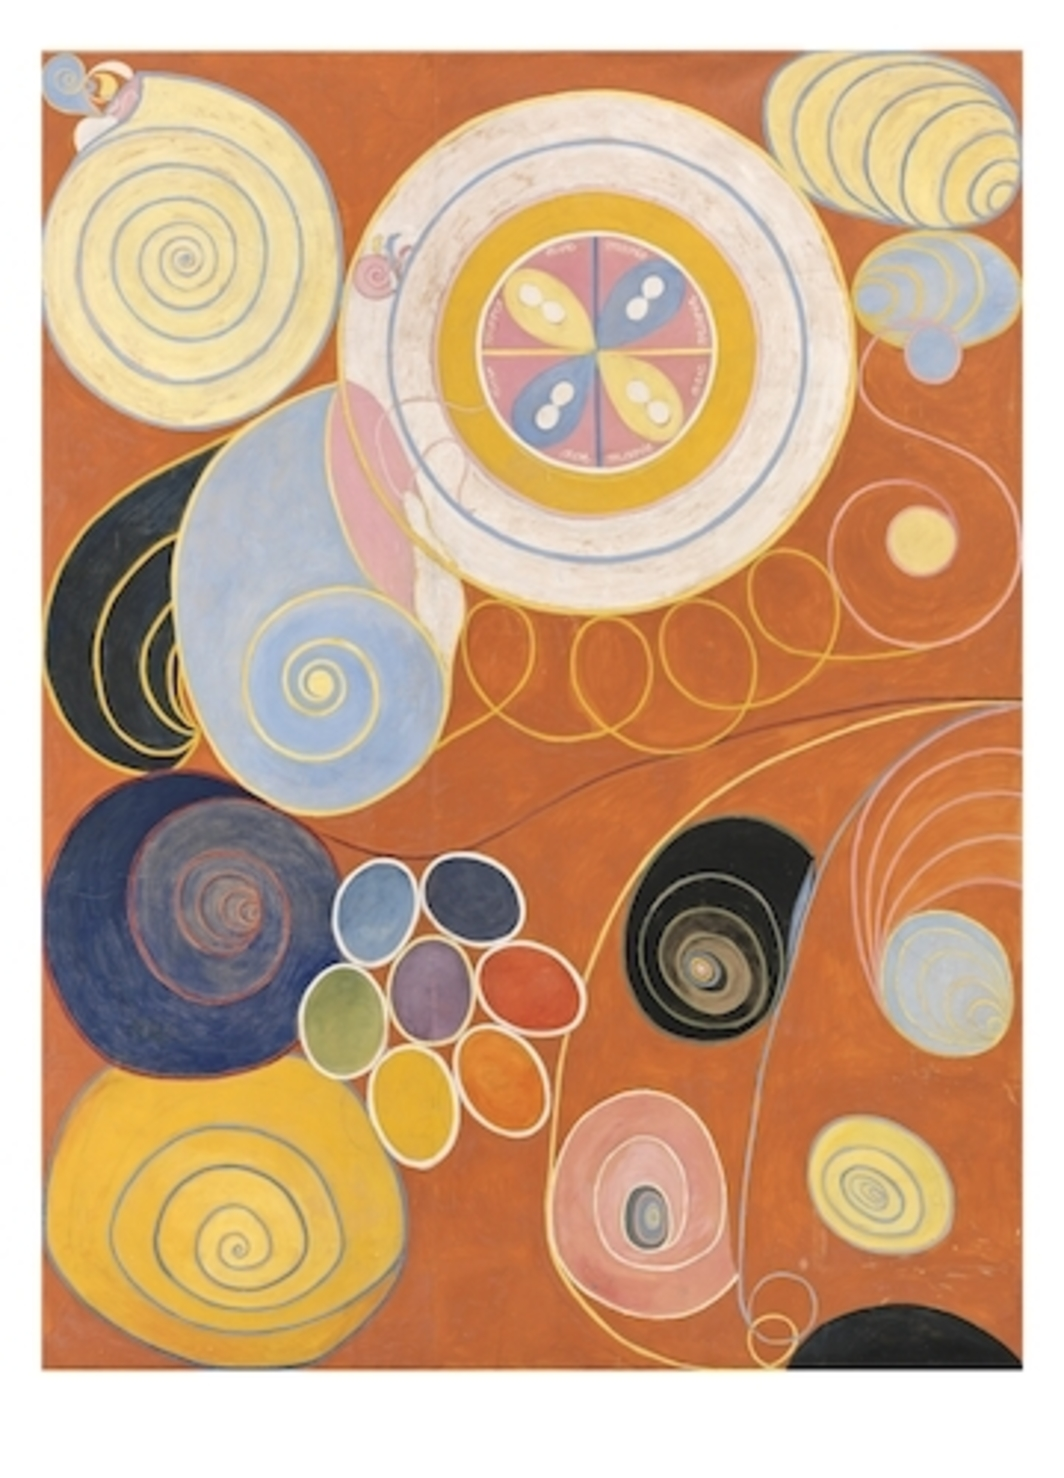 Hilma Af Klint, The Ten Largest, 1907, oil and tempura on paper, XXX.